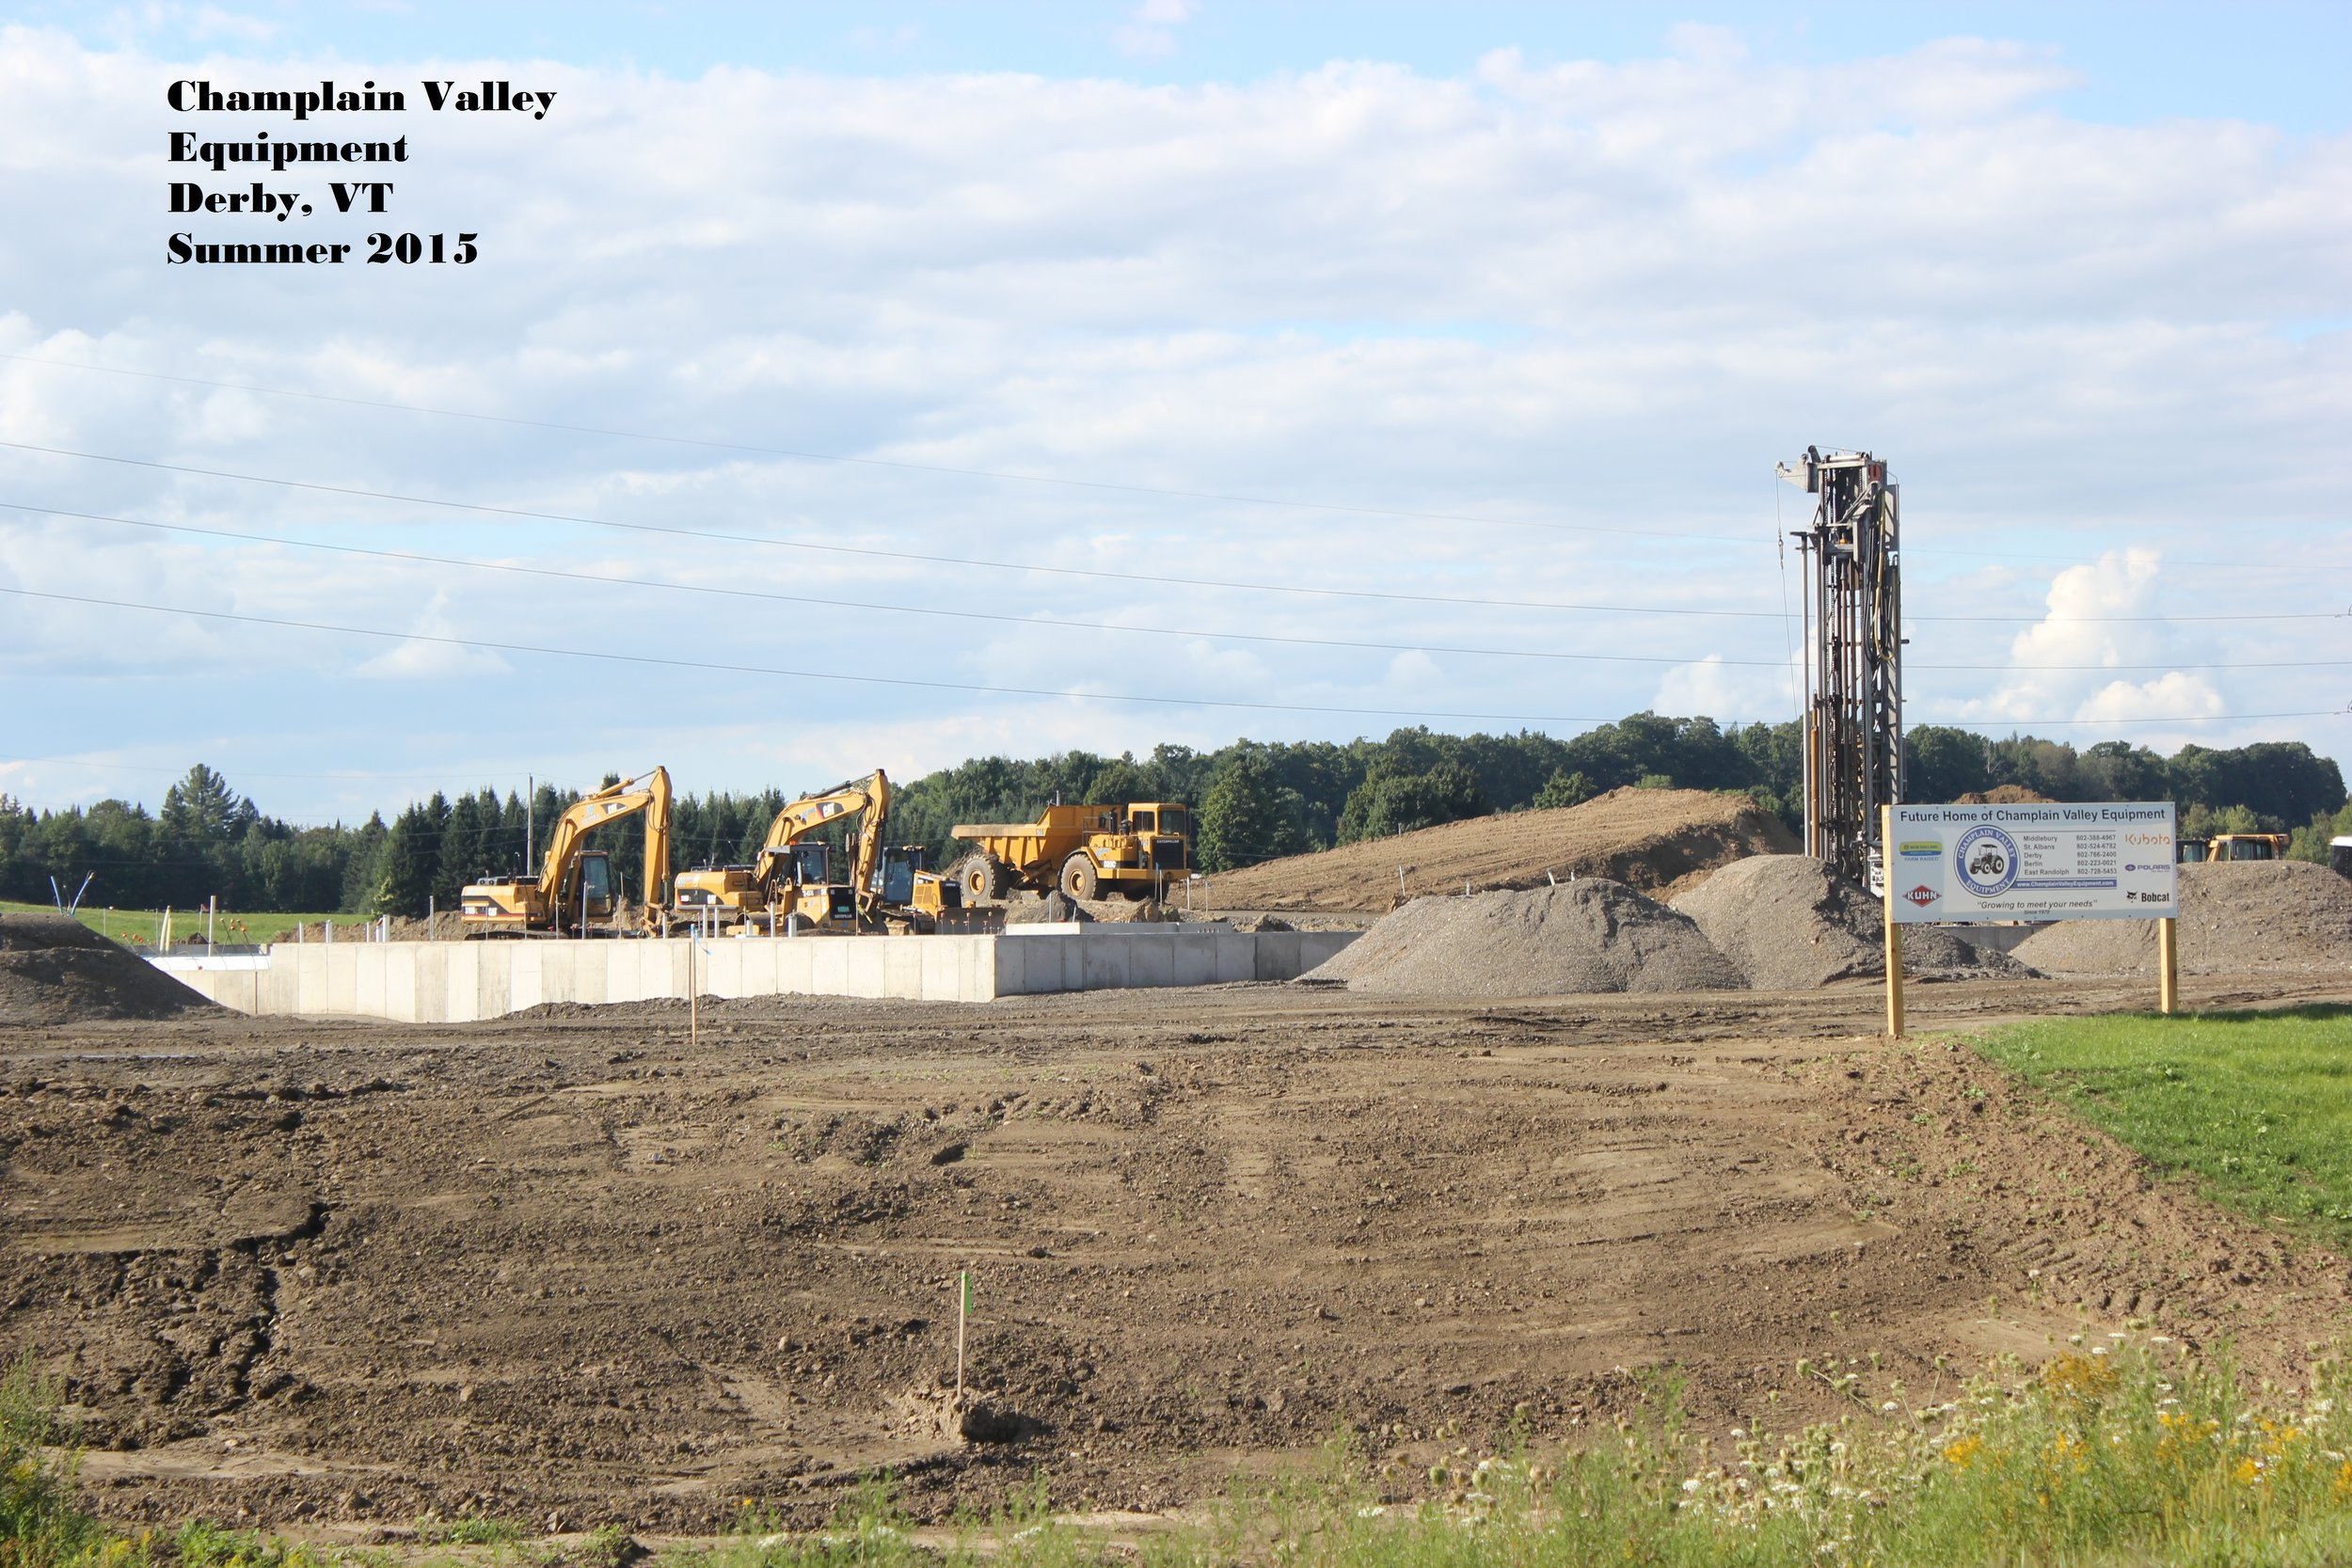 Champlain Valley Equipment August 2015 # 3.jpg